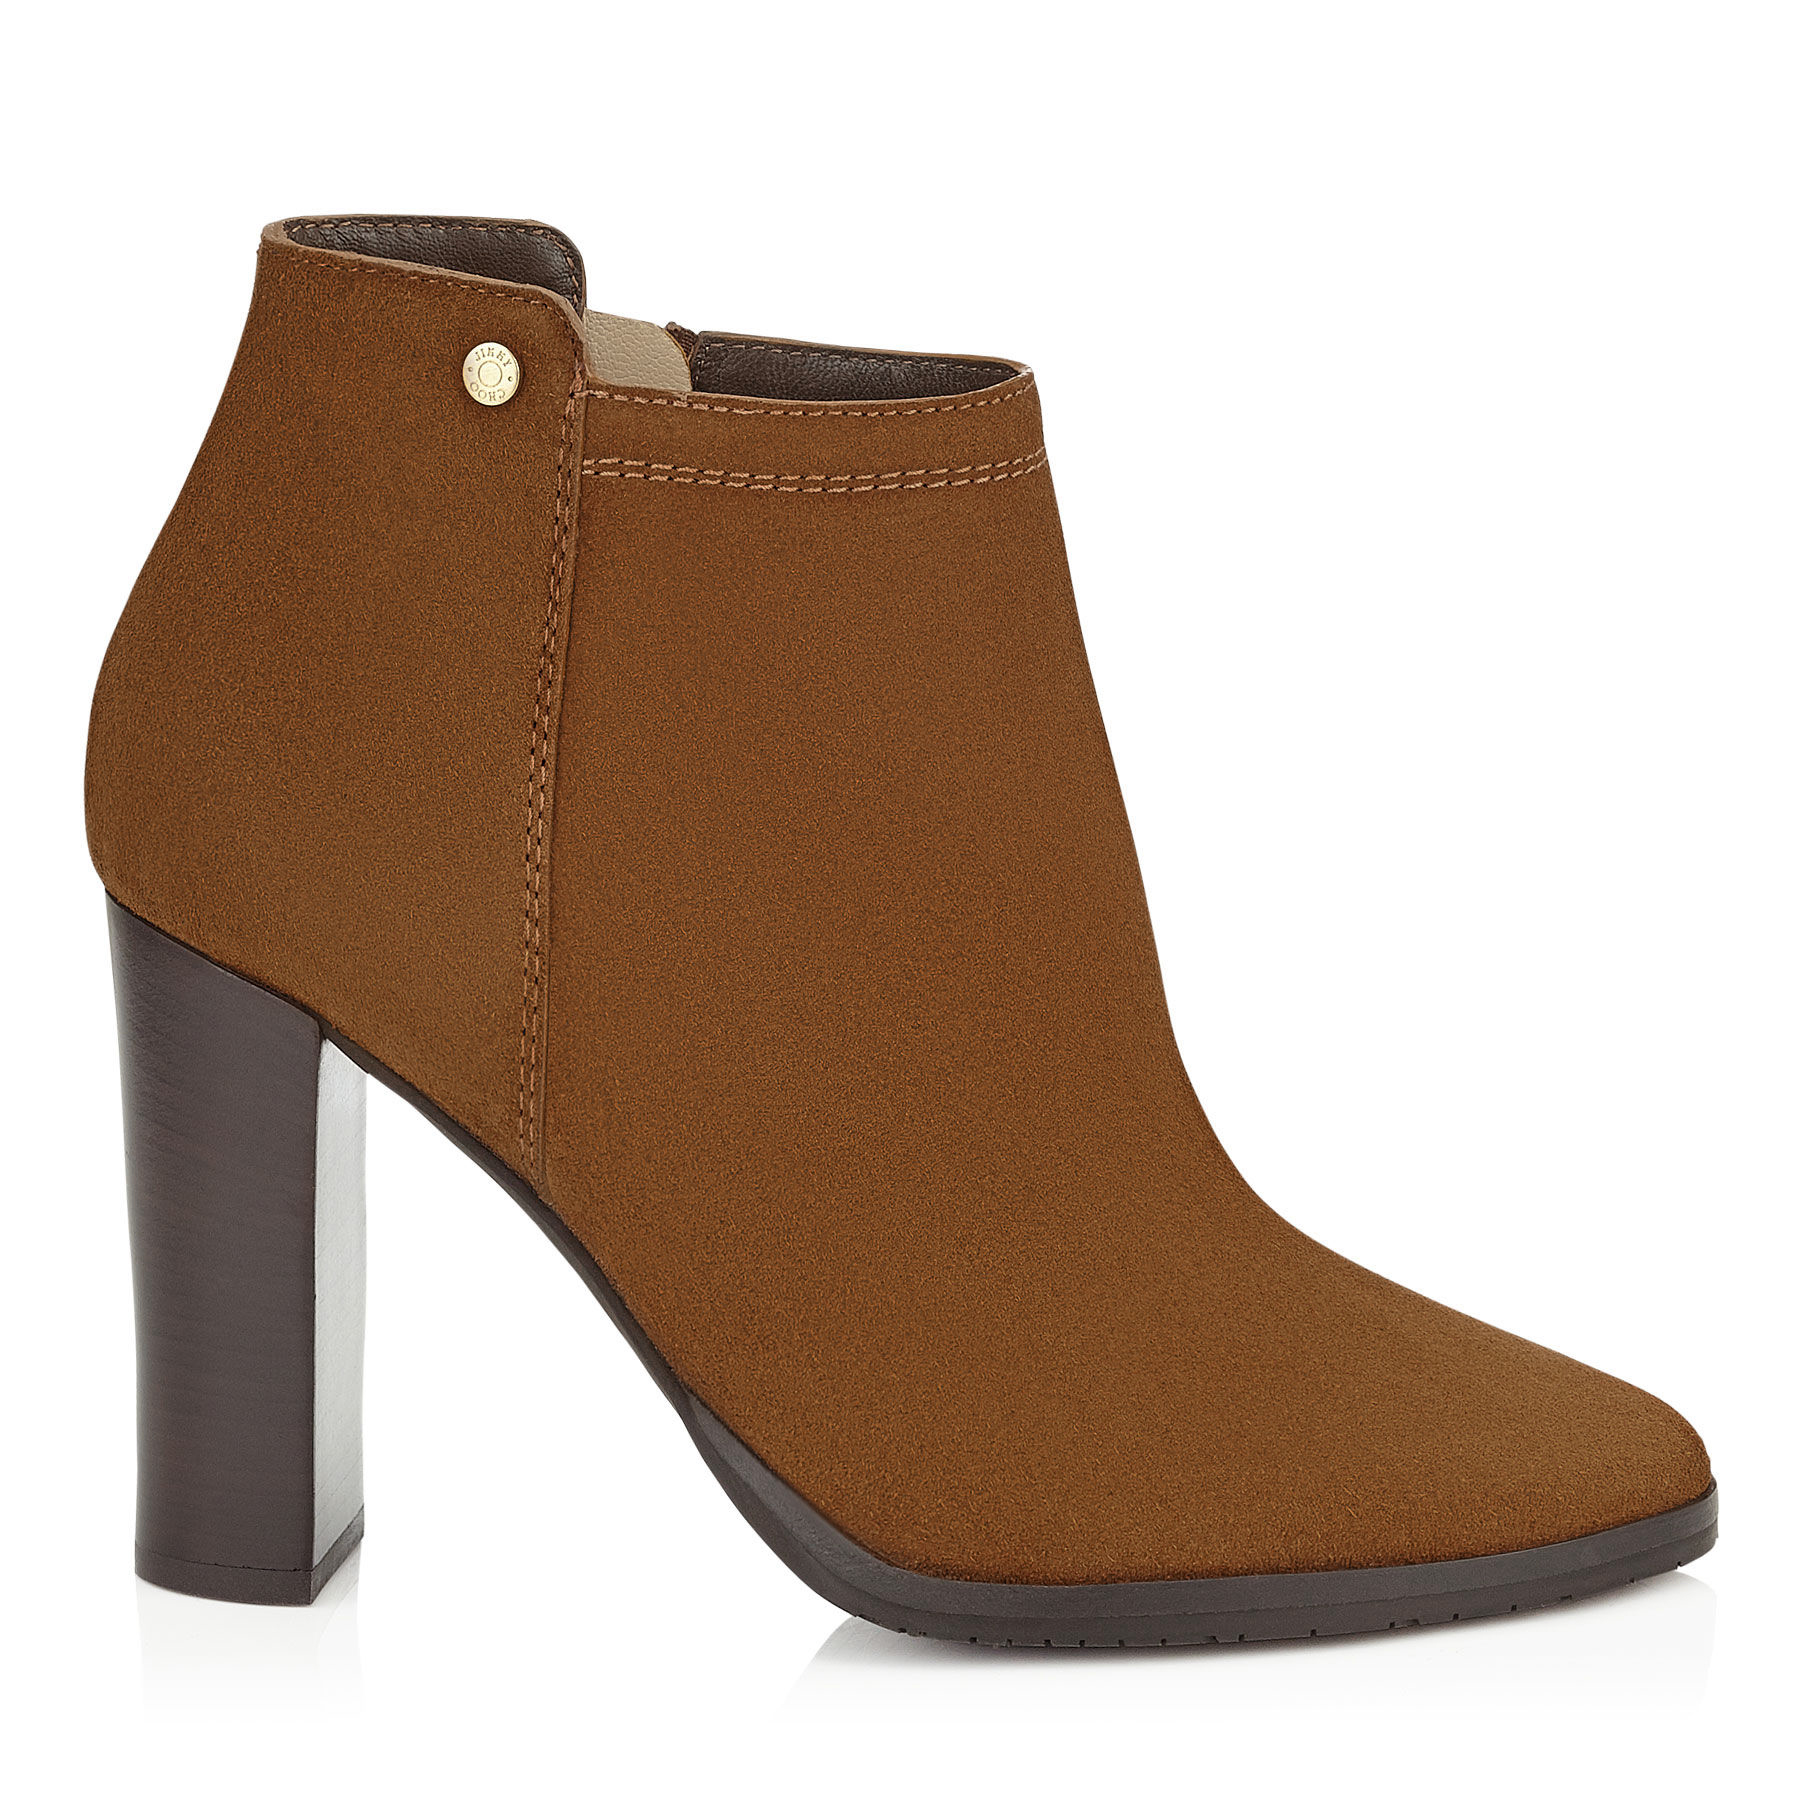 HART 95 Canyon Suede Ankle Boots